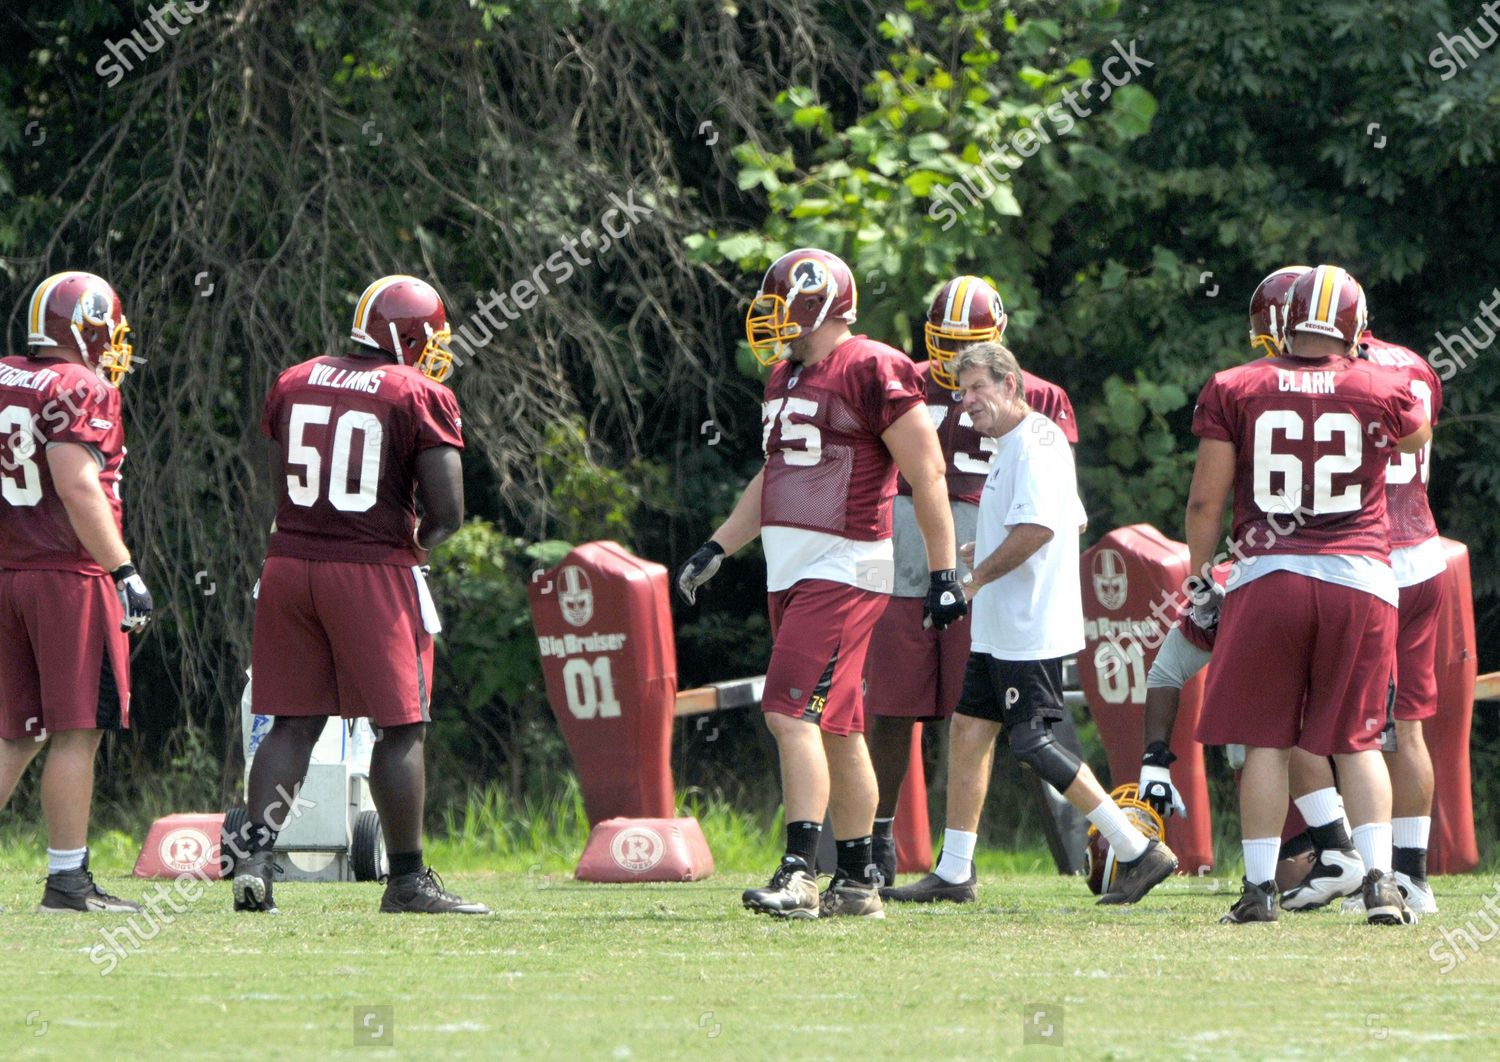 Stock photo of 2009 Washington Redskins Training Camp, Ashburn, Virginia, USA - 06 Aug 2009